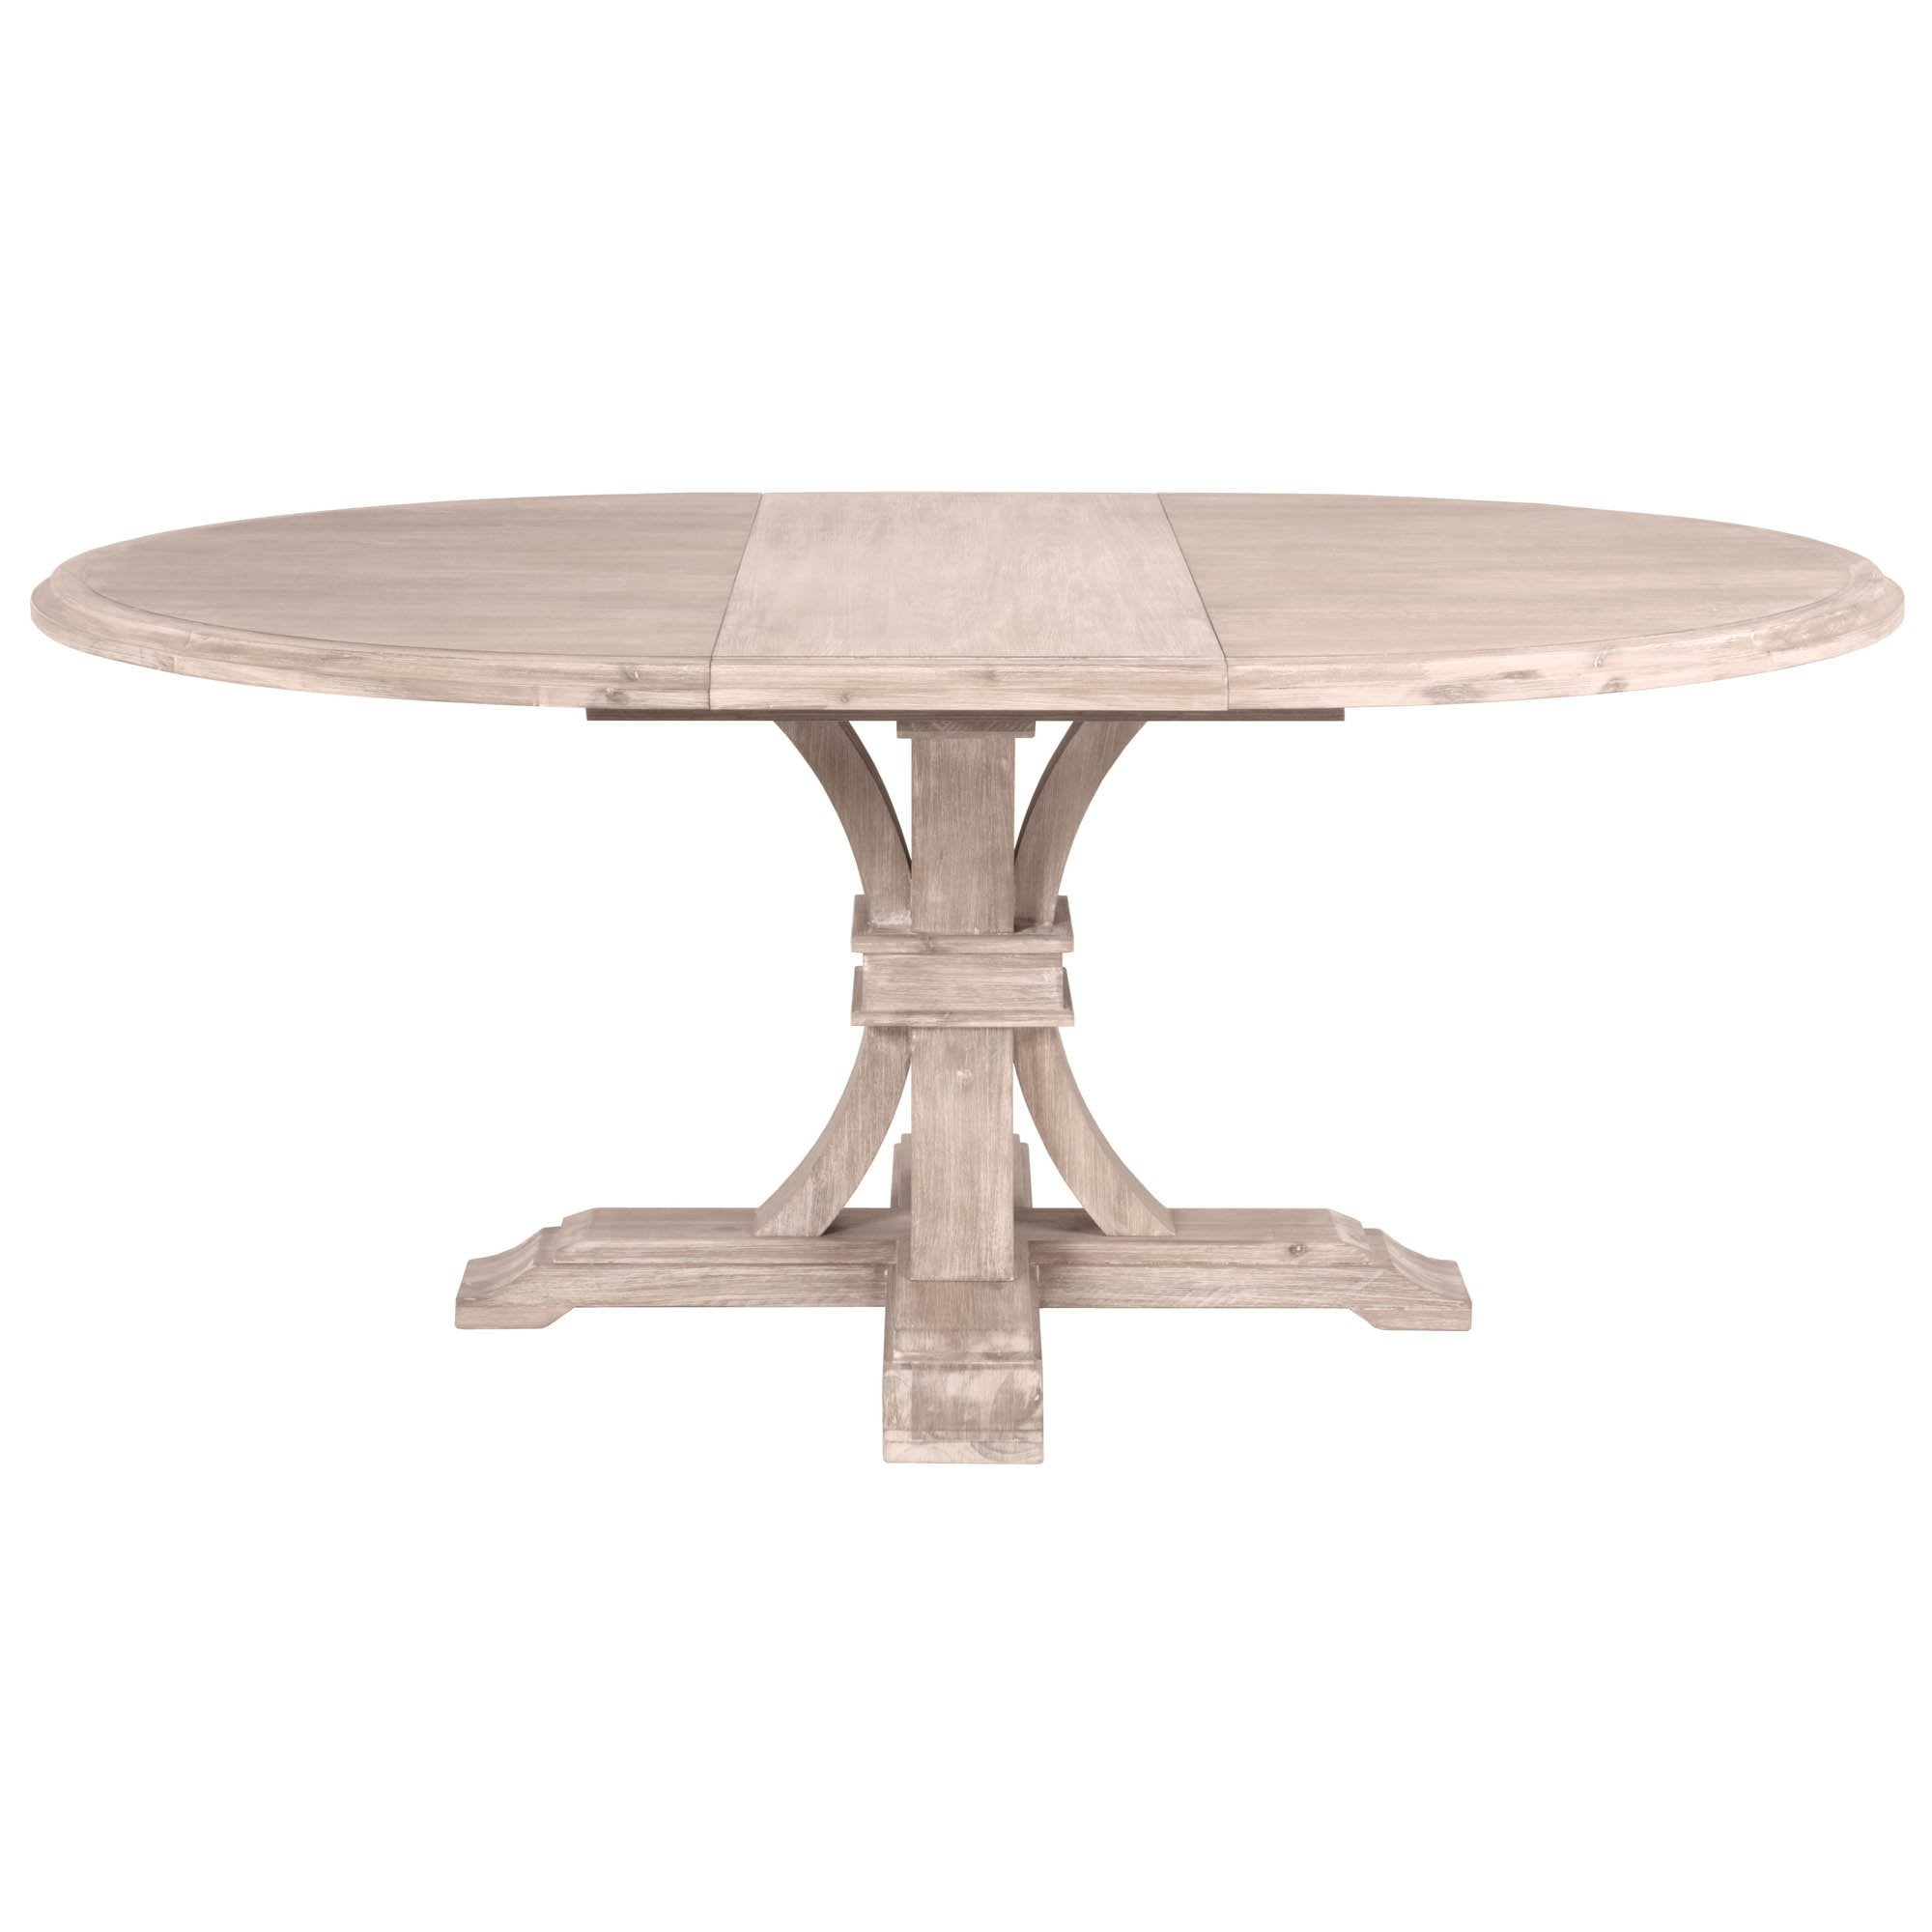 "Devon 54"" Round Extension Dining Table in Natural Gray"